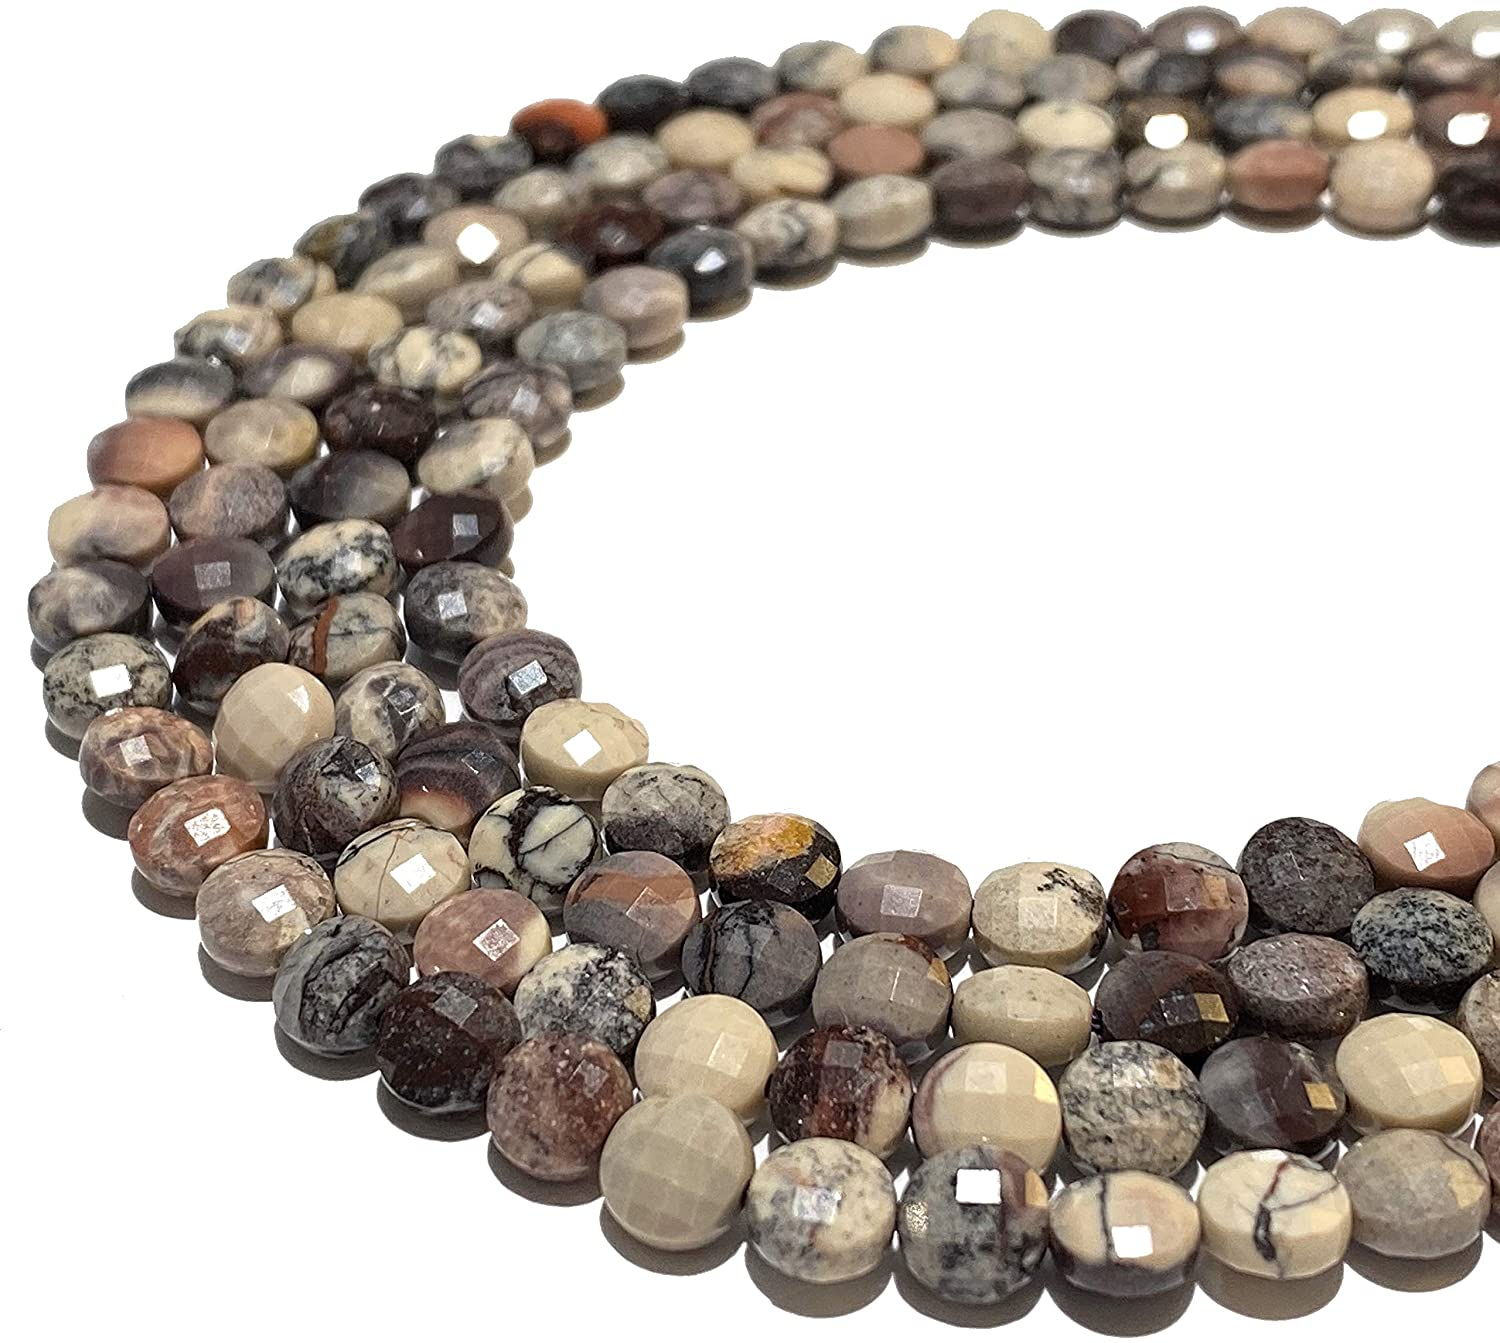 [ABCgems] Mexican Porcelain Jasper (Exquisite Matrix) Tiny 6mm Micro-Faceted Diamond-Cut Checkerboard Coin Beads (A Revolutionary Cutting Process- More Surface to Reflect Light)